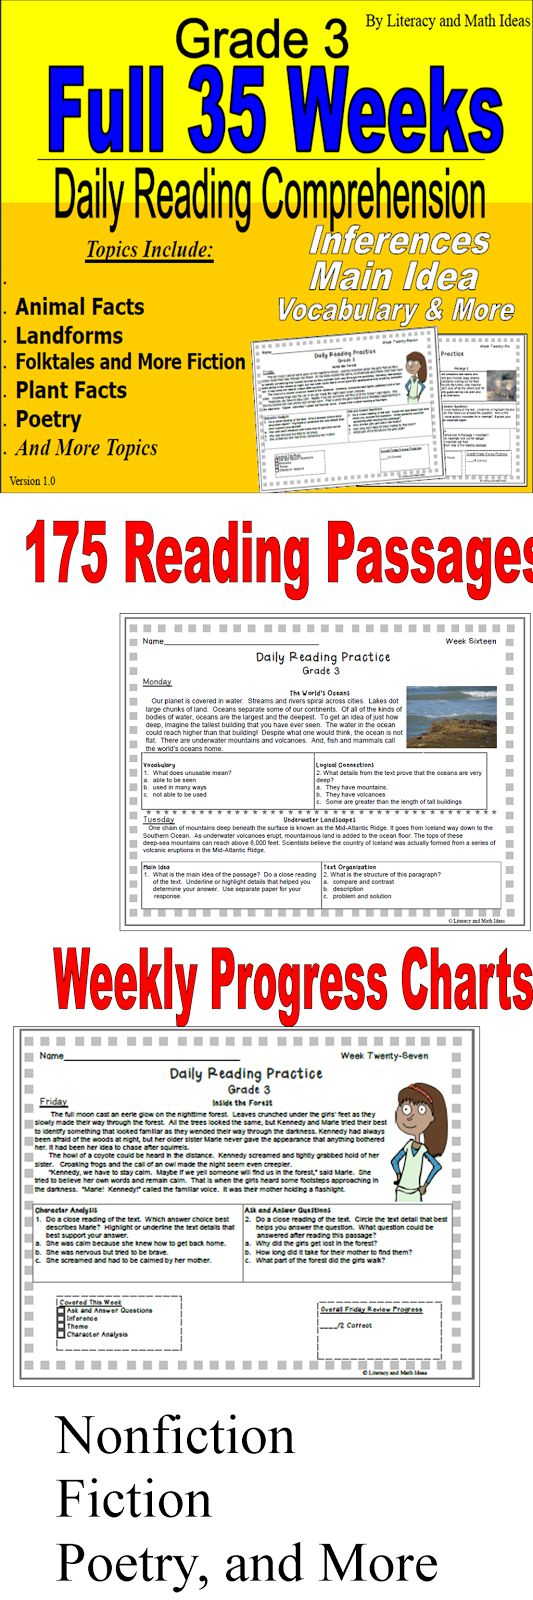 175 reading passages are included.  Nonfiction, fiction, animals, plant facts, history, poetry and more are included.  Comprehension skills include inferences, cause and effect, character analysis, vocabulary, literary devices, details, main idea, and more skills.  A weekly progress chart and answer keys are included.